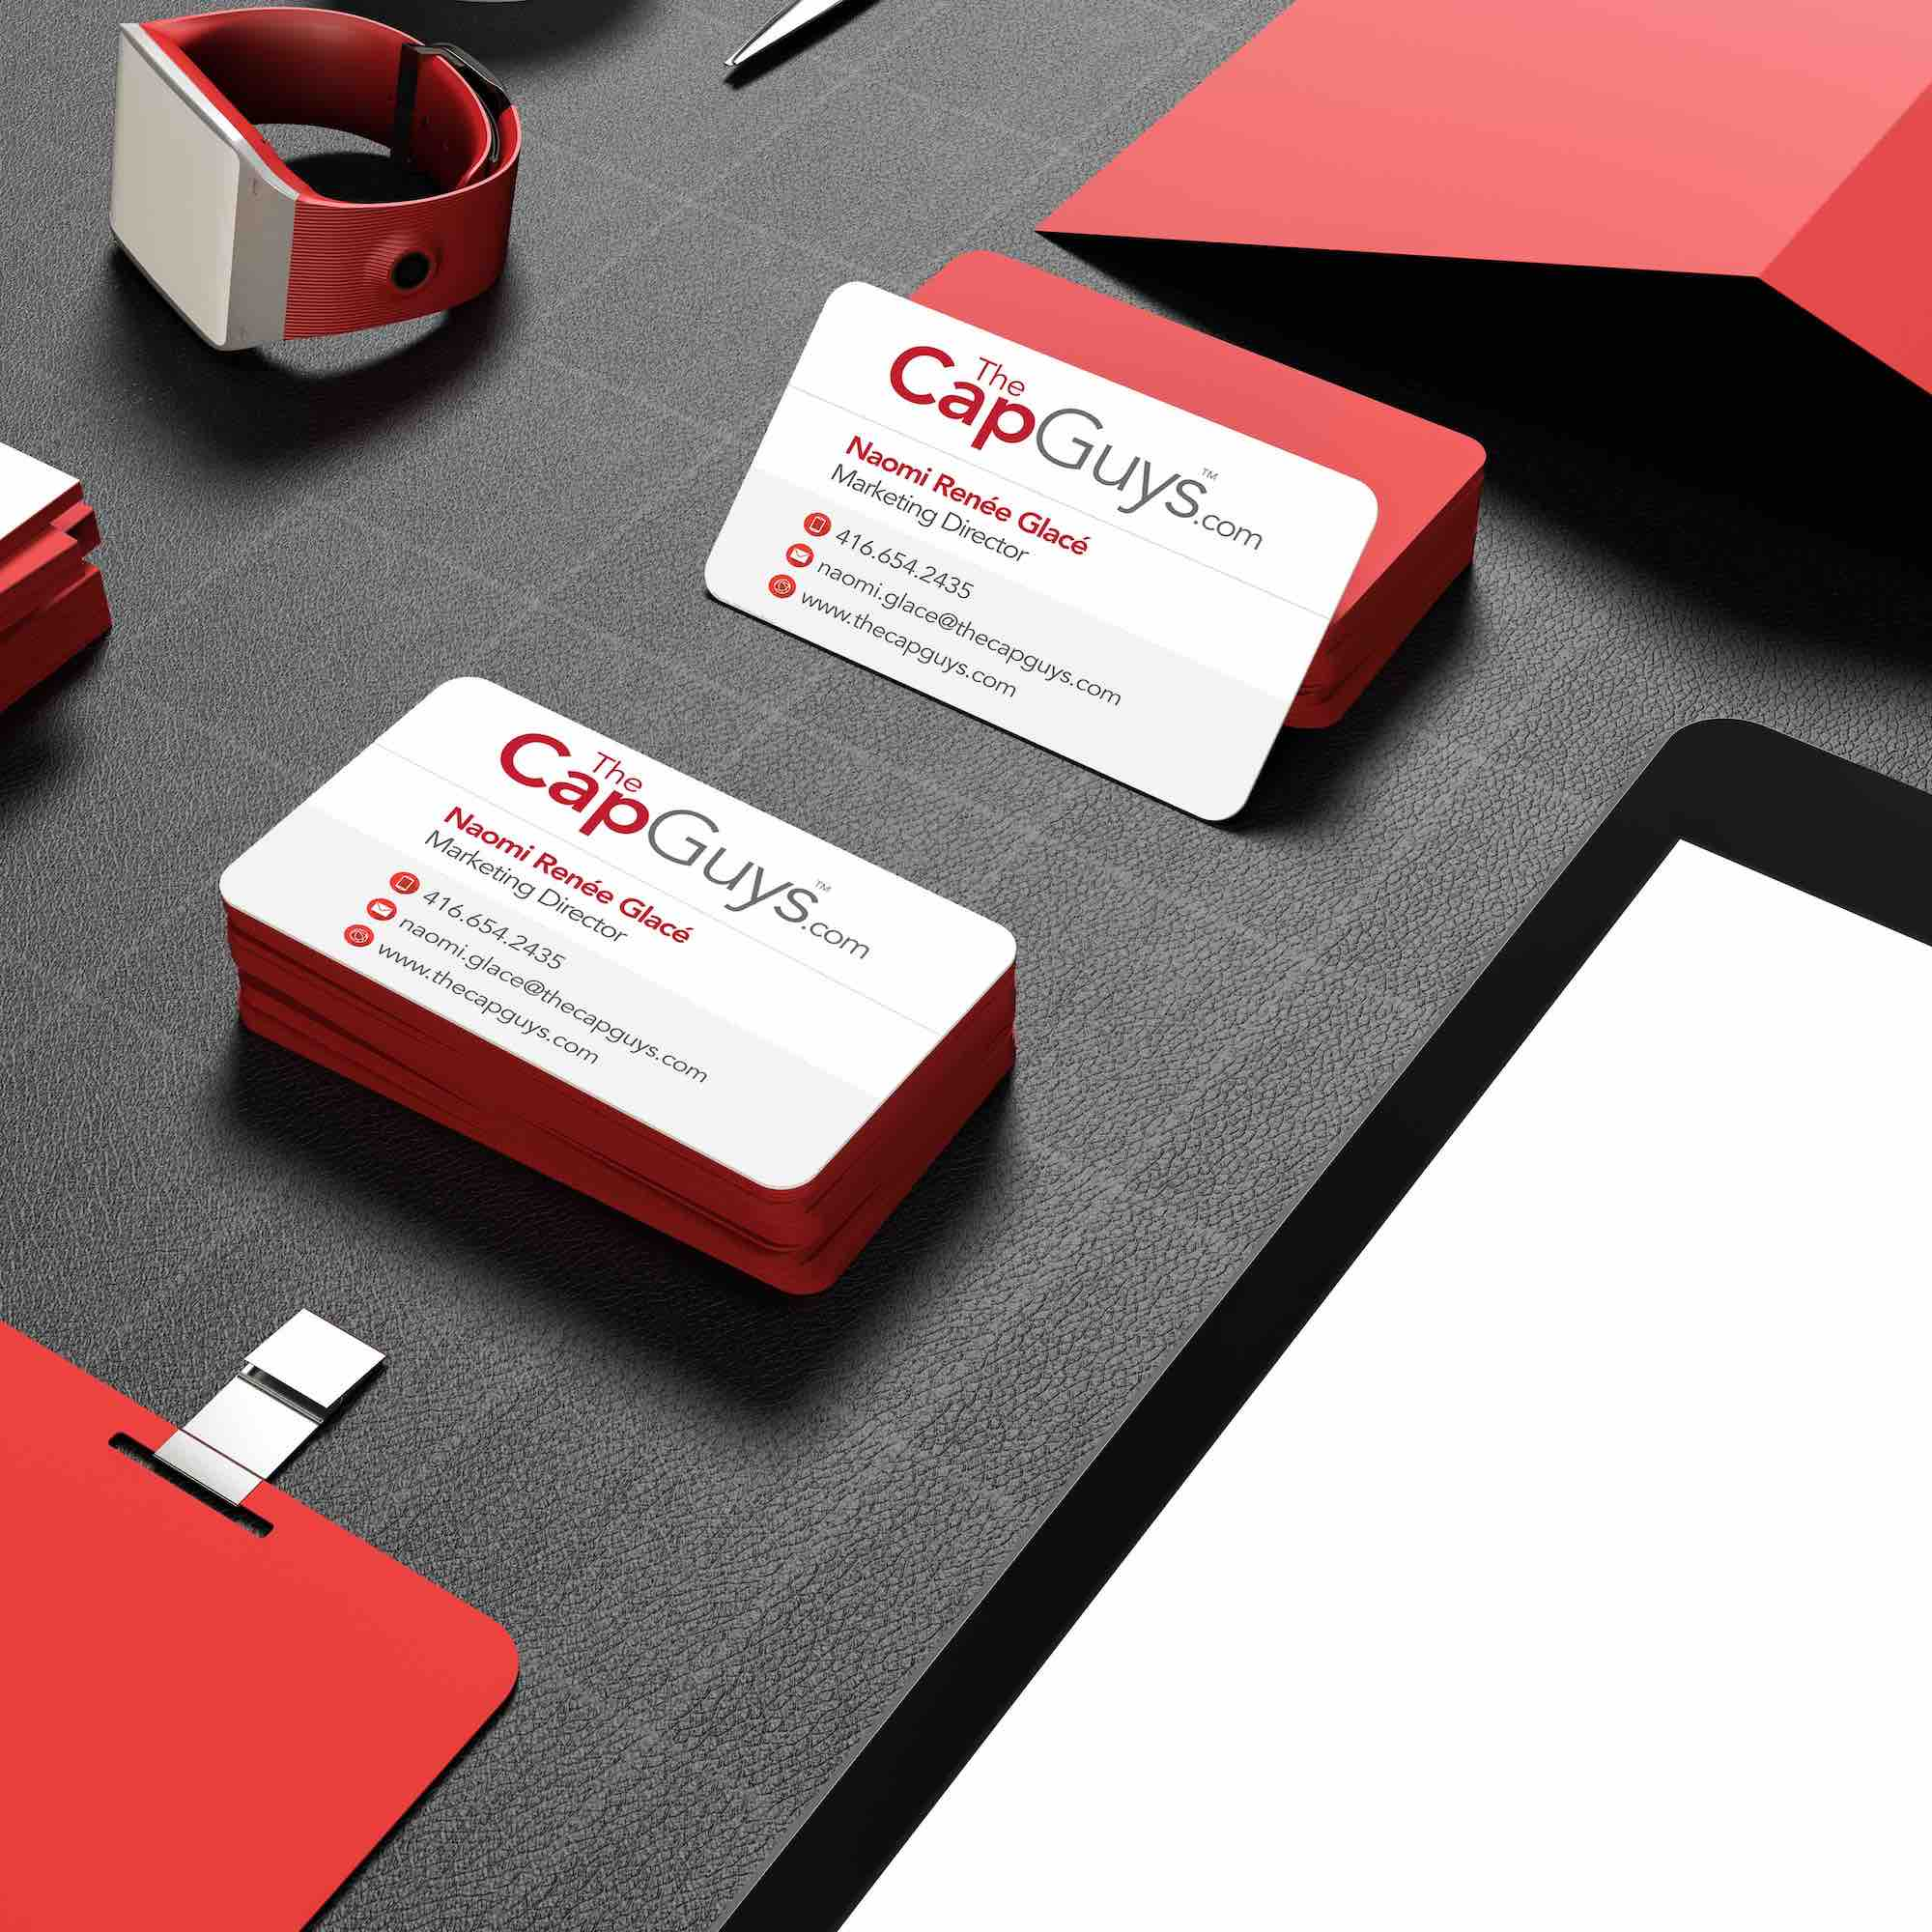 The Cap Guys - Corporate Identity